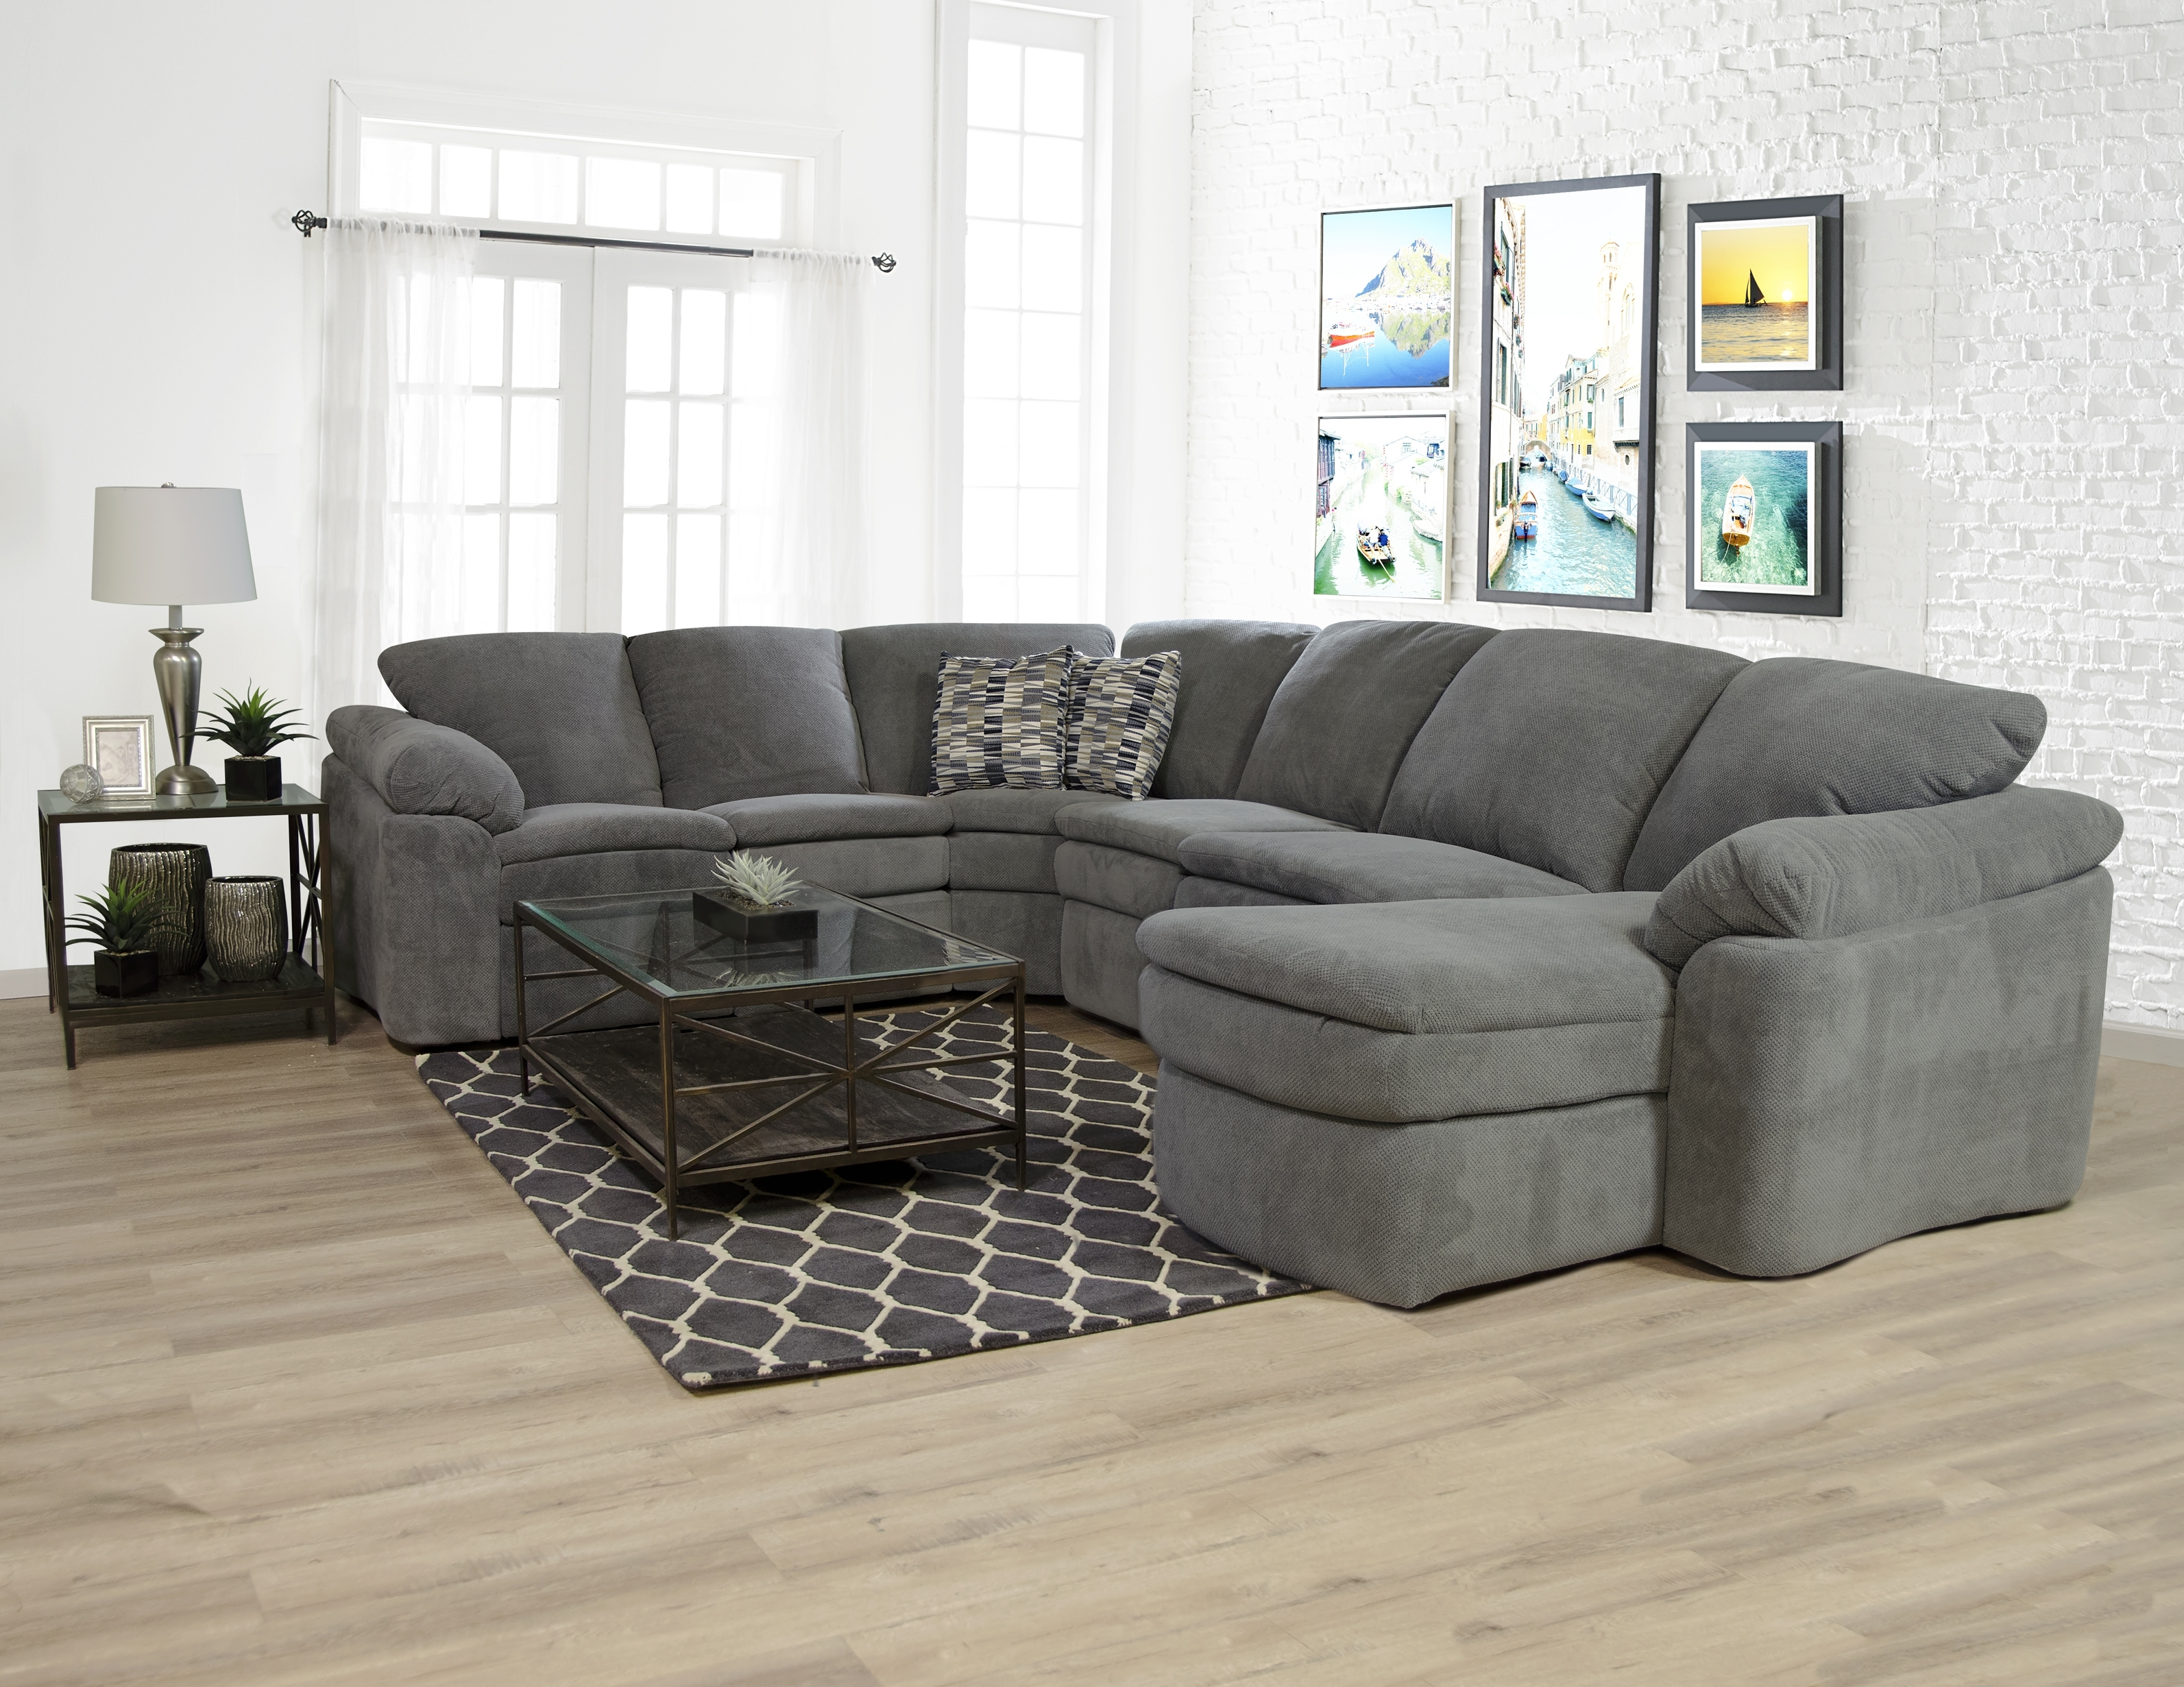 England Furniture 7300 06, 7300 40, 7300 22, 7300 39, 7300 57 With With Regard To Recent Erie Pa Sectional Sofas (View 19 of 20)